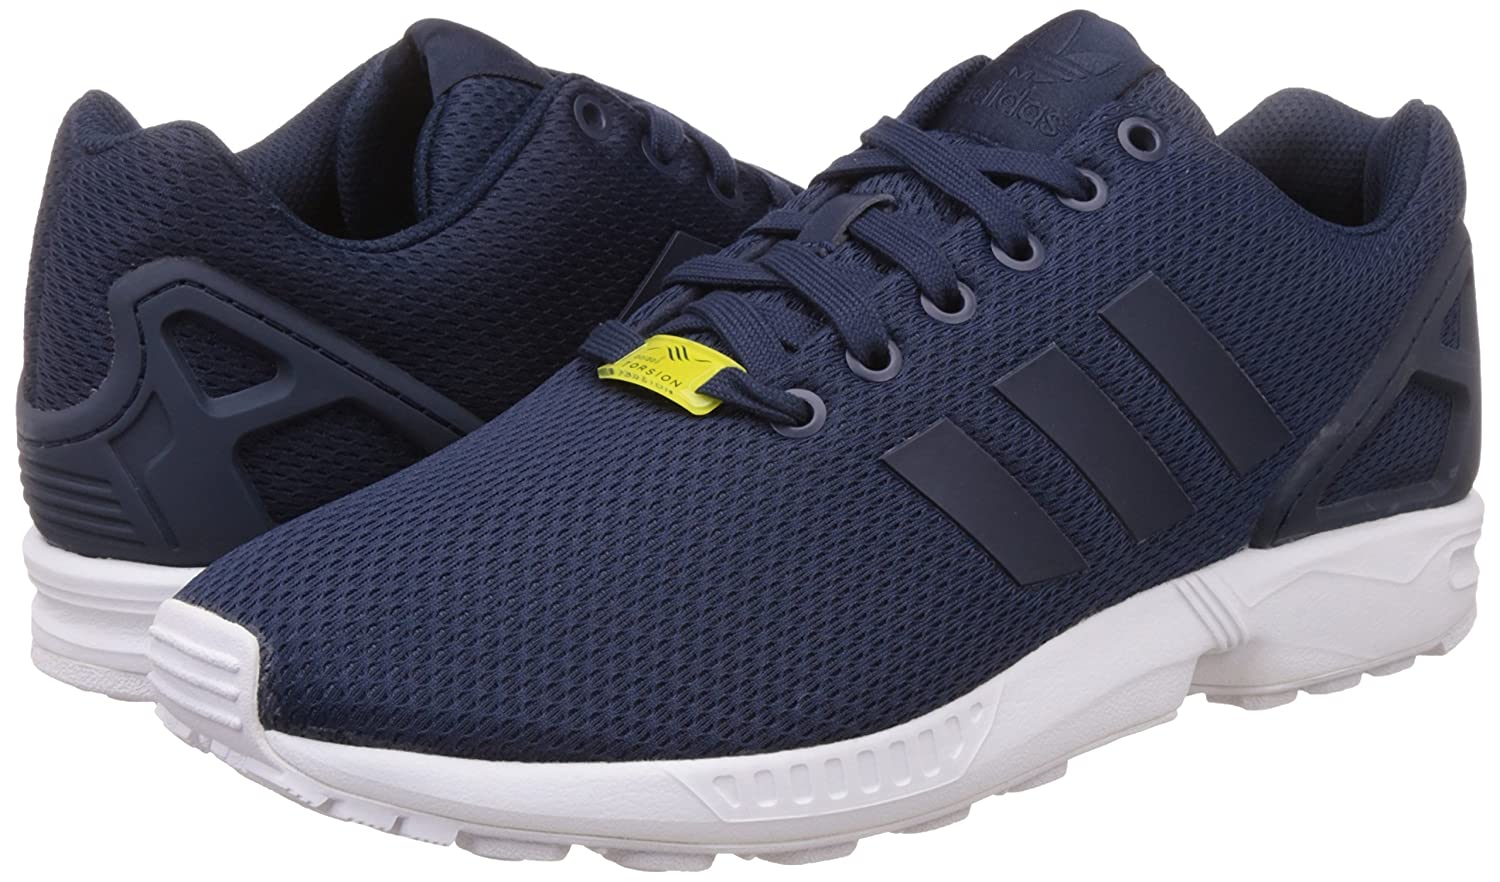 Adidas ZX Flux, Zapatillas Unisex Adulto 39 1/3 EU|Multicolor (Azul Marino/Blanco)